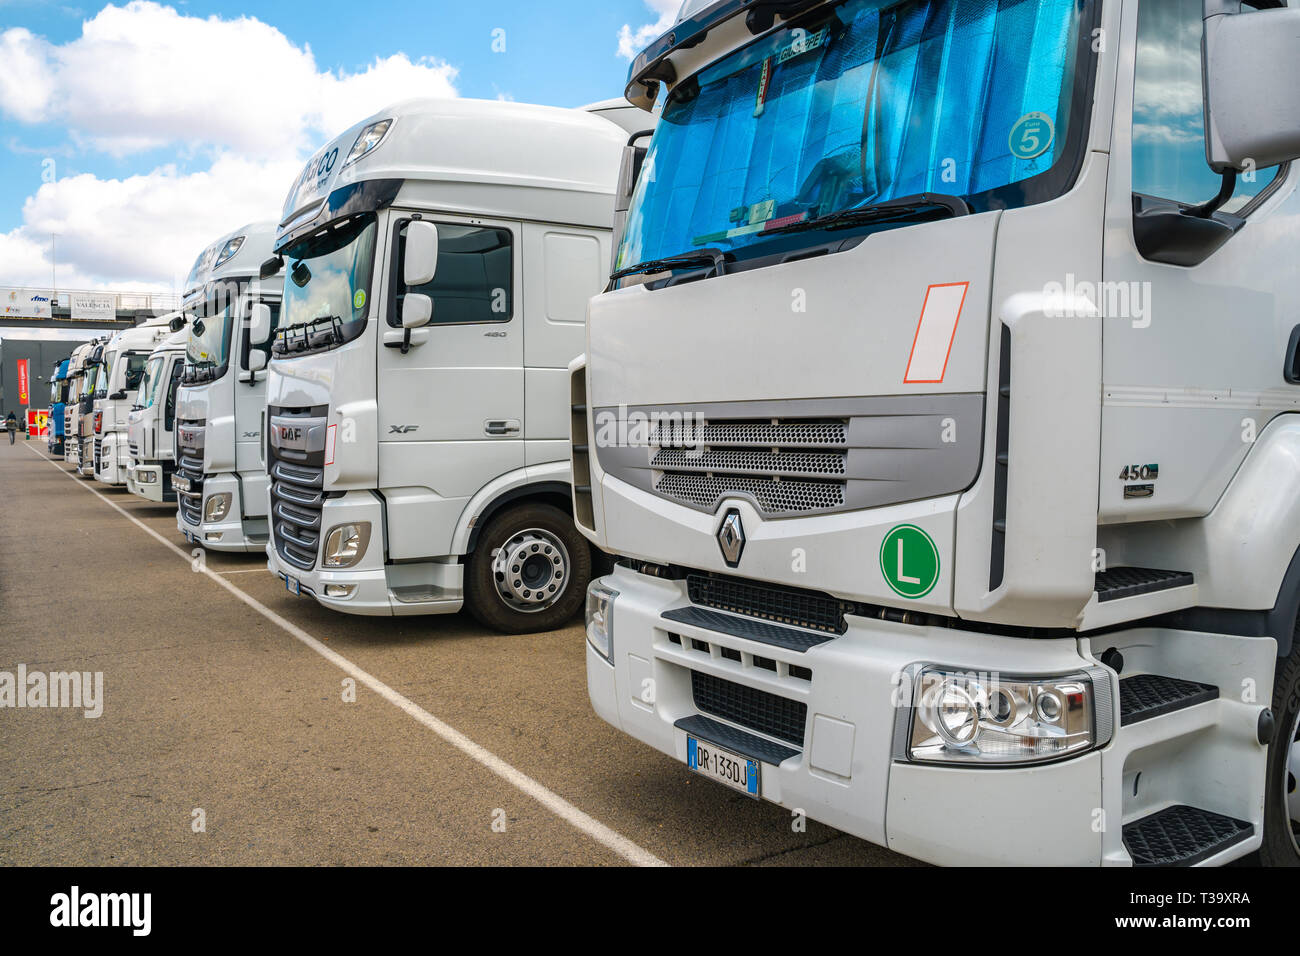 Valencia,Spain - March 30, 2019:  : Trailers parked in line. International shipping. Trucking and logistic. - Stock Image